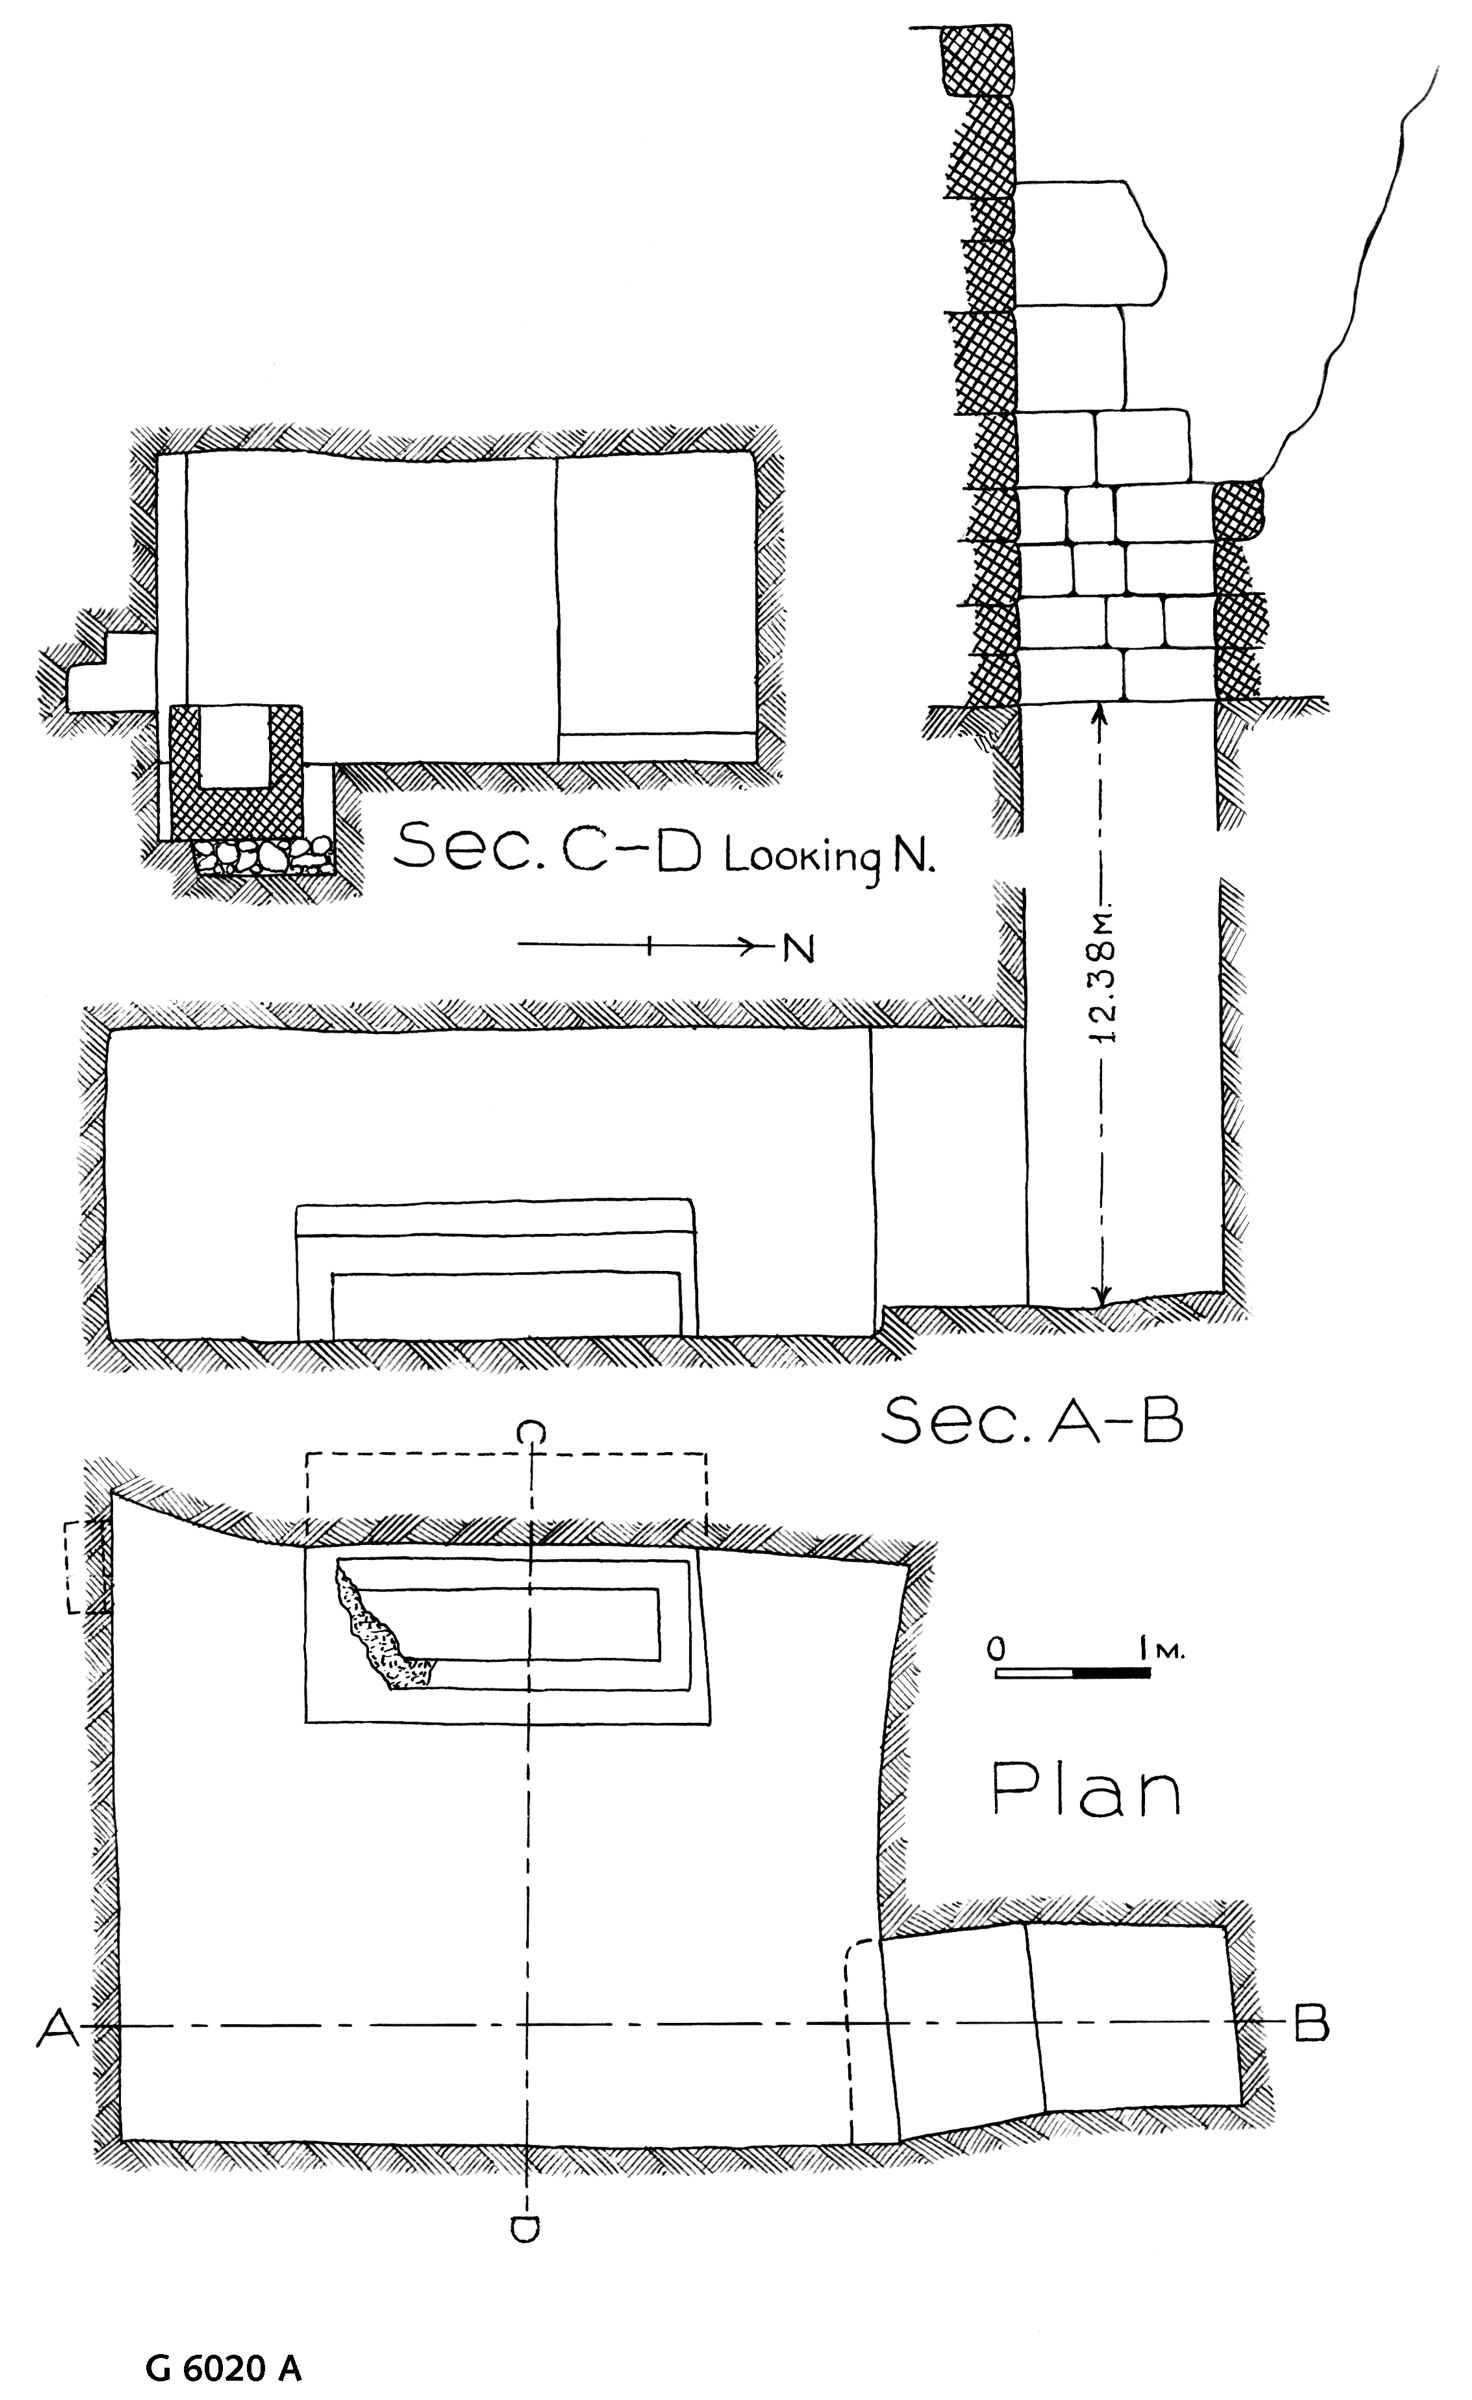 Maps and plans: G 6020, Shaft A